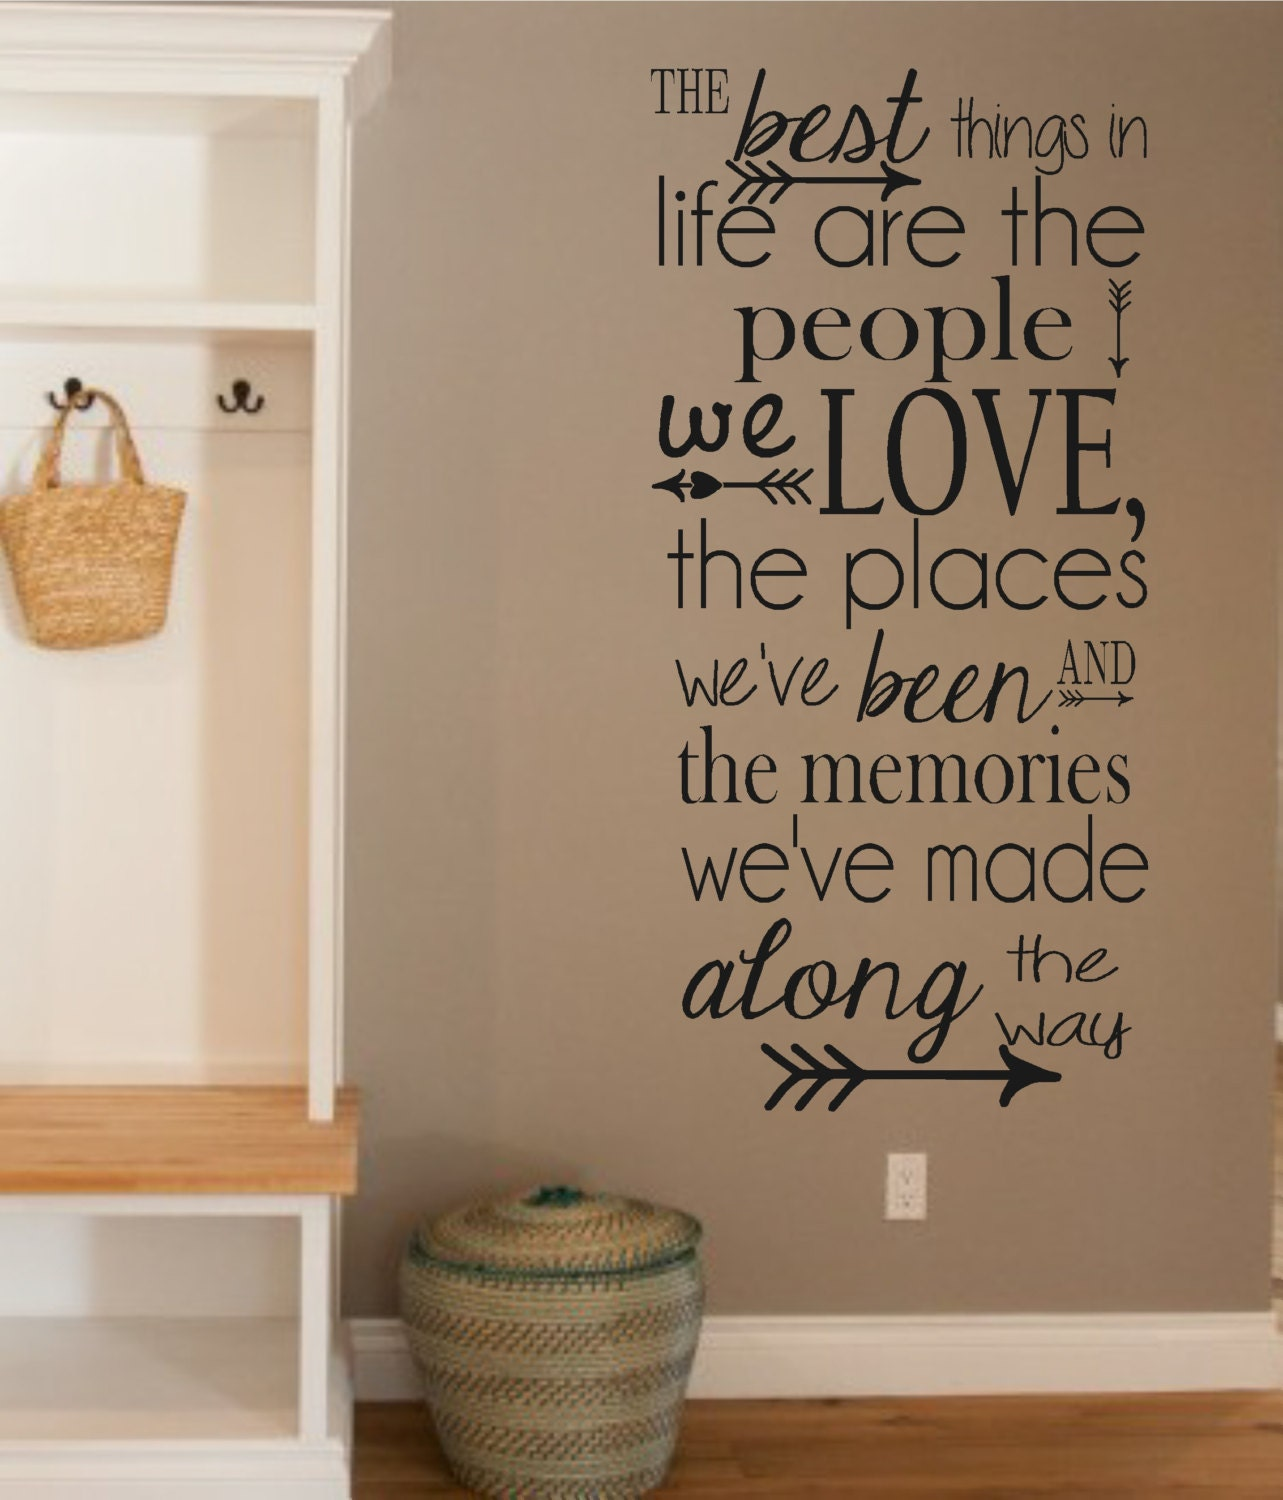 Motivational Inspirational Quotes: Vinyl Wall Decal-The Best Things In Life People Love